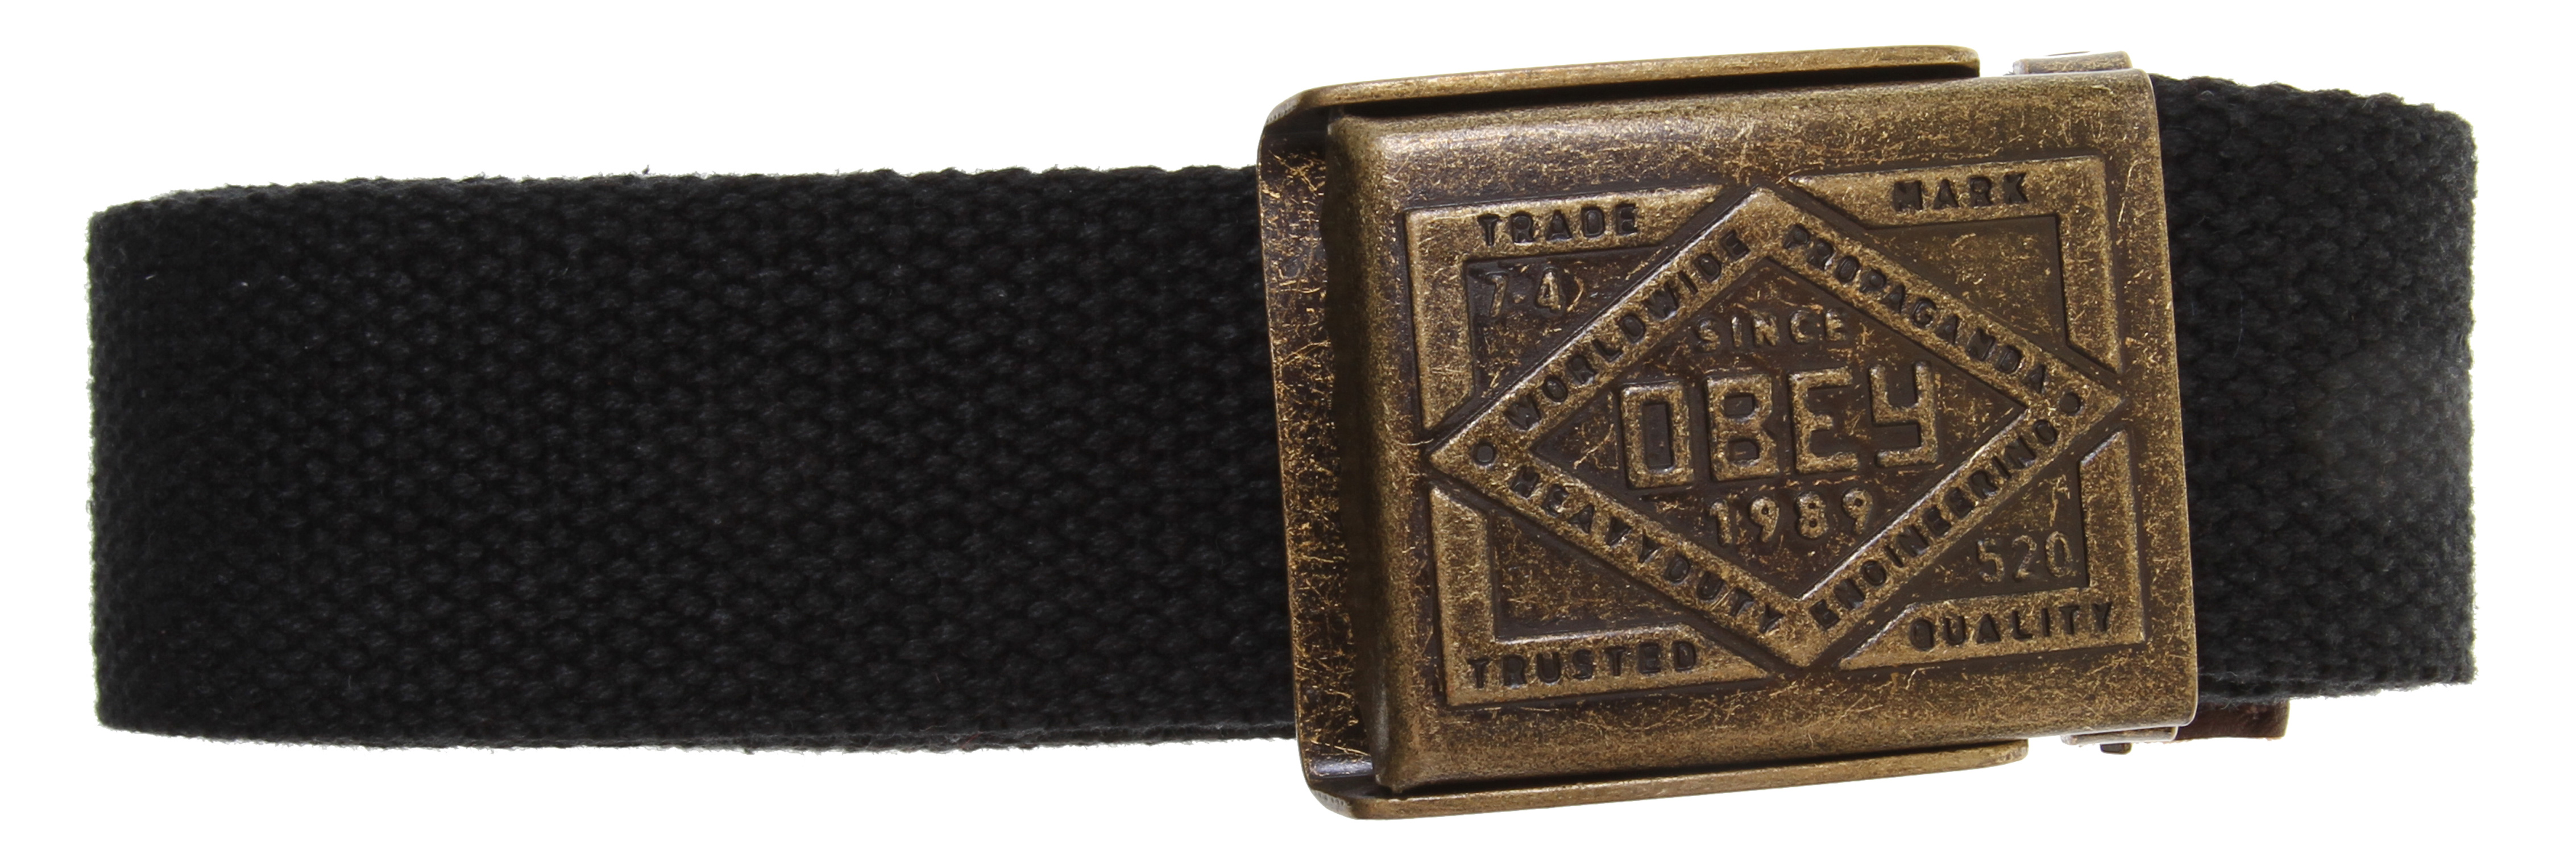 Camp and Hike Key Features of the Obey Trademark Camp Belt: Cotton webbing camp belt with debossed logo and bottle opener 100% cotton - $25.95